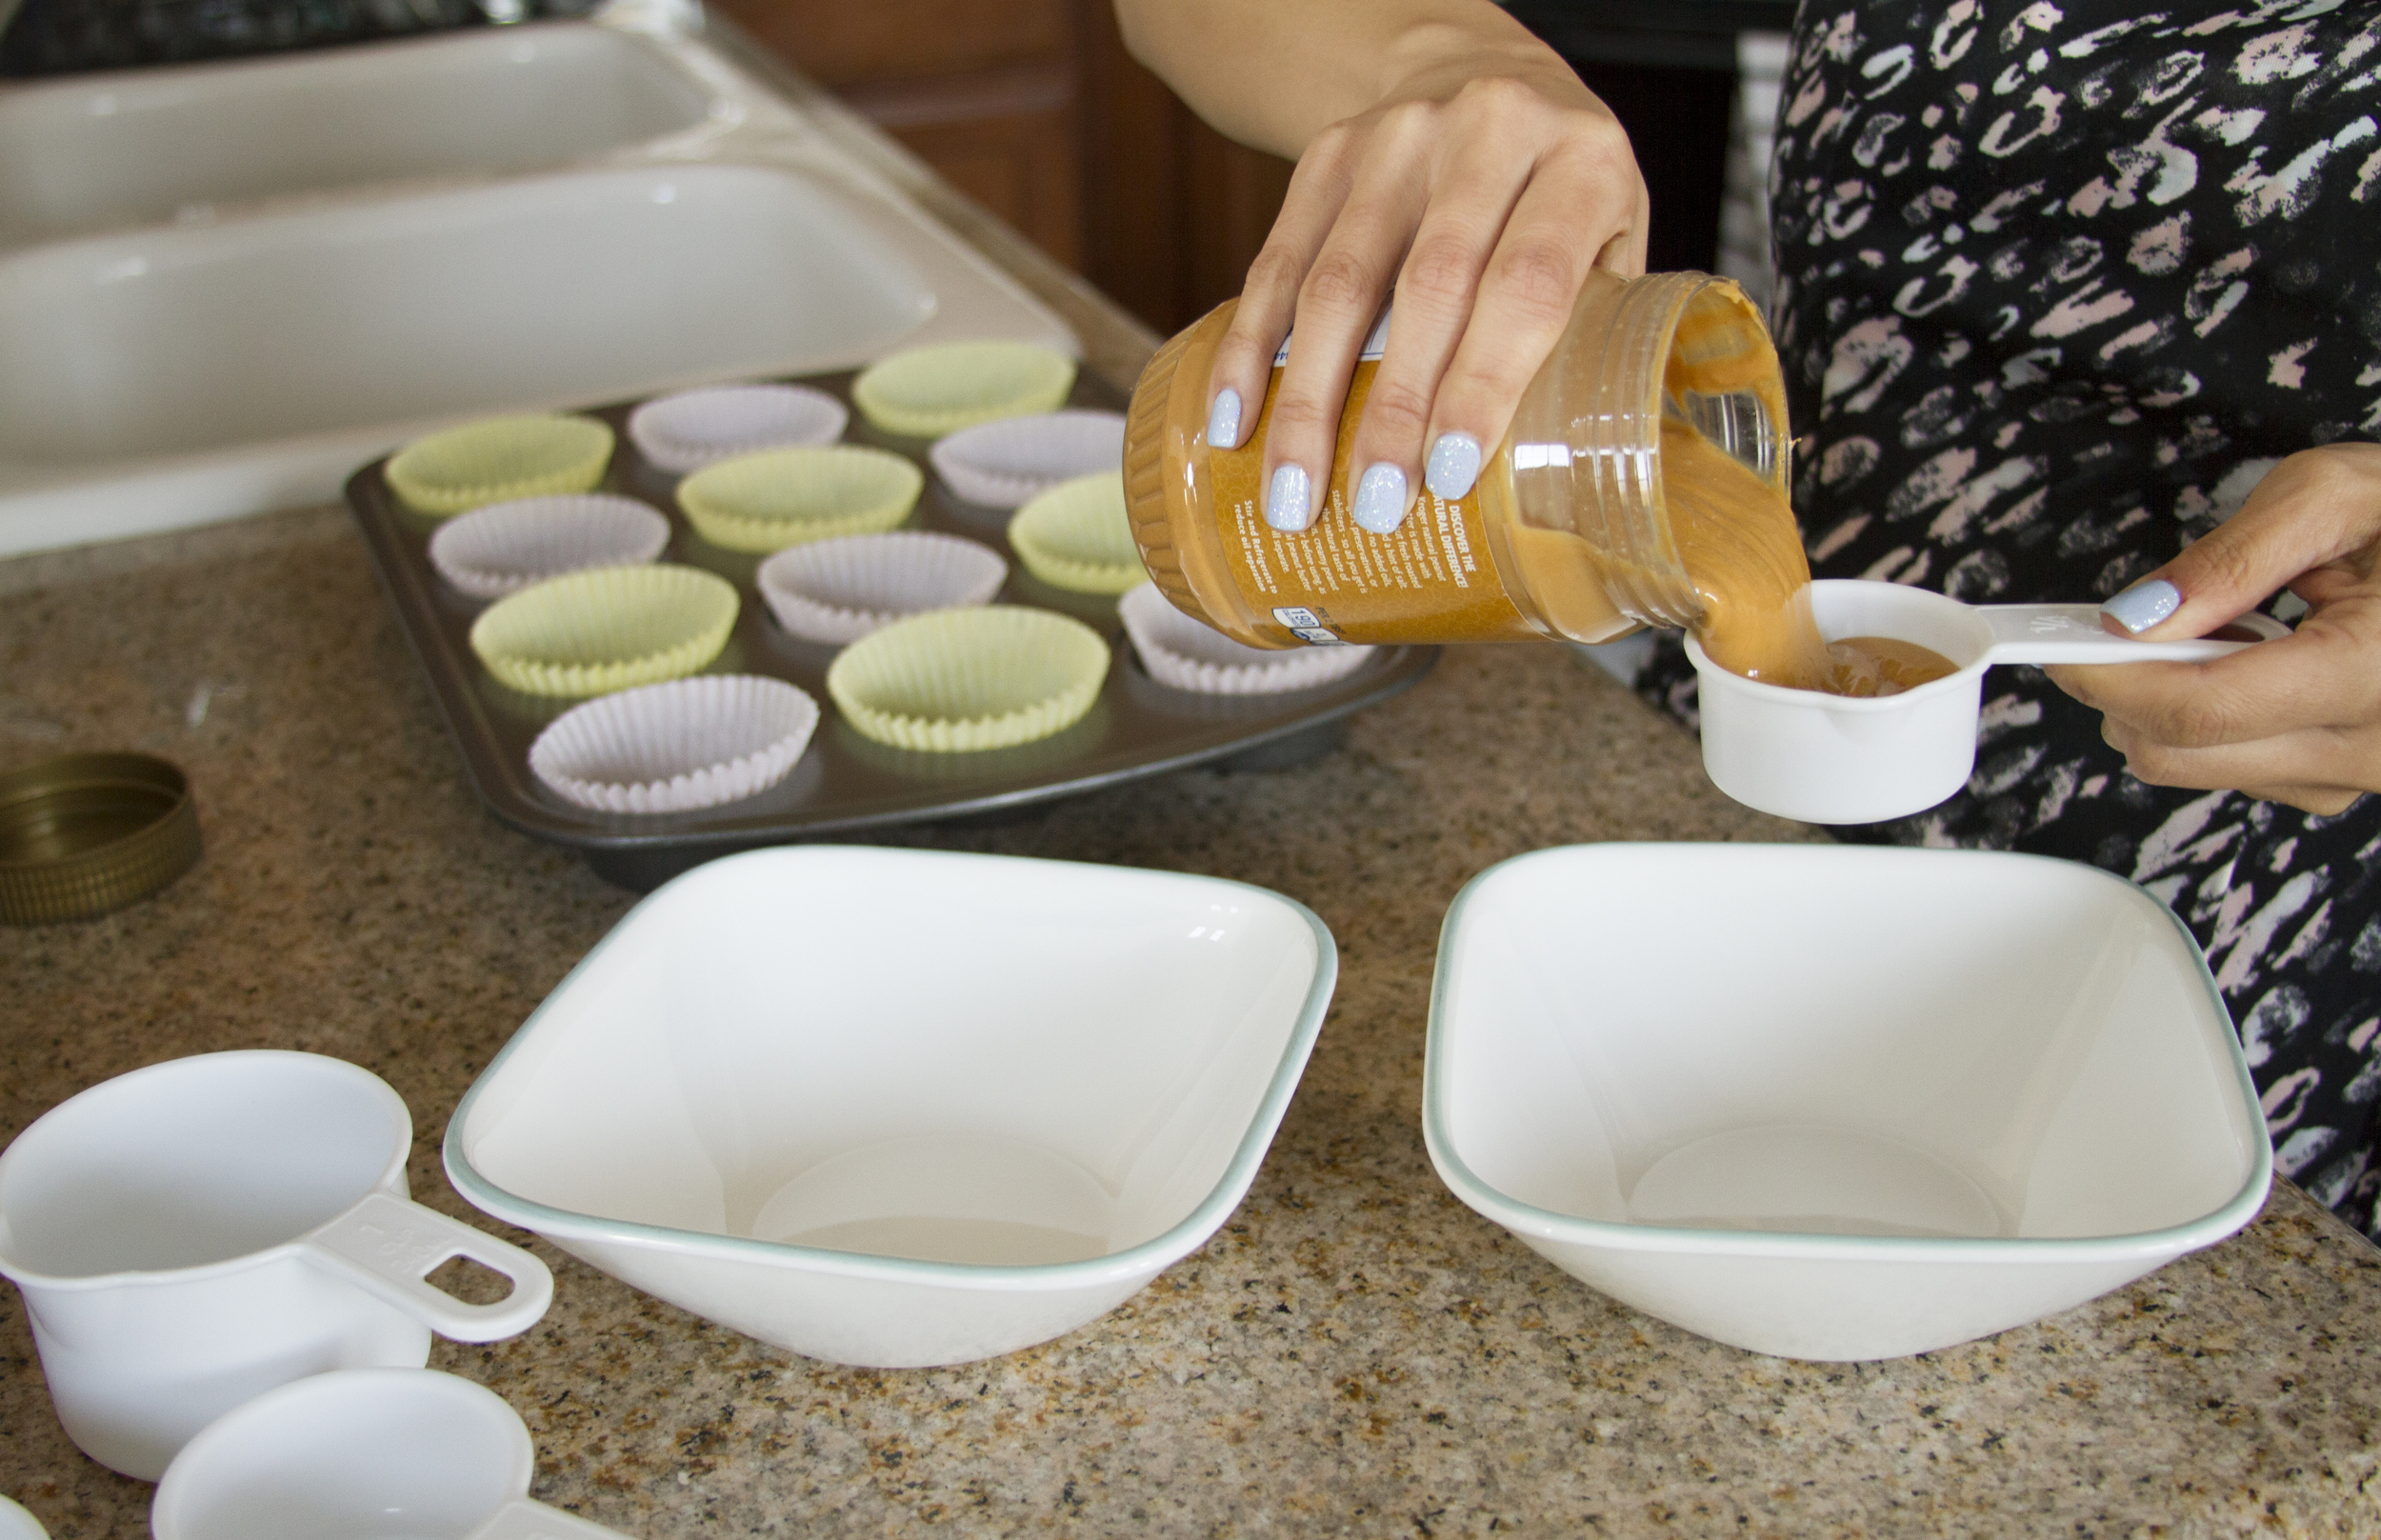 While the bottom layer freezes, start on the top layer by adding 1/4 cup of natural smooth peanut butter into a new bowl.